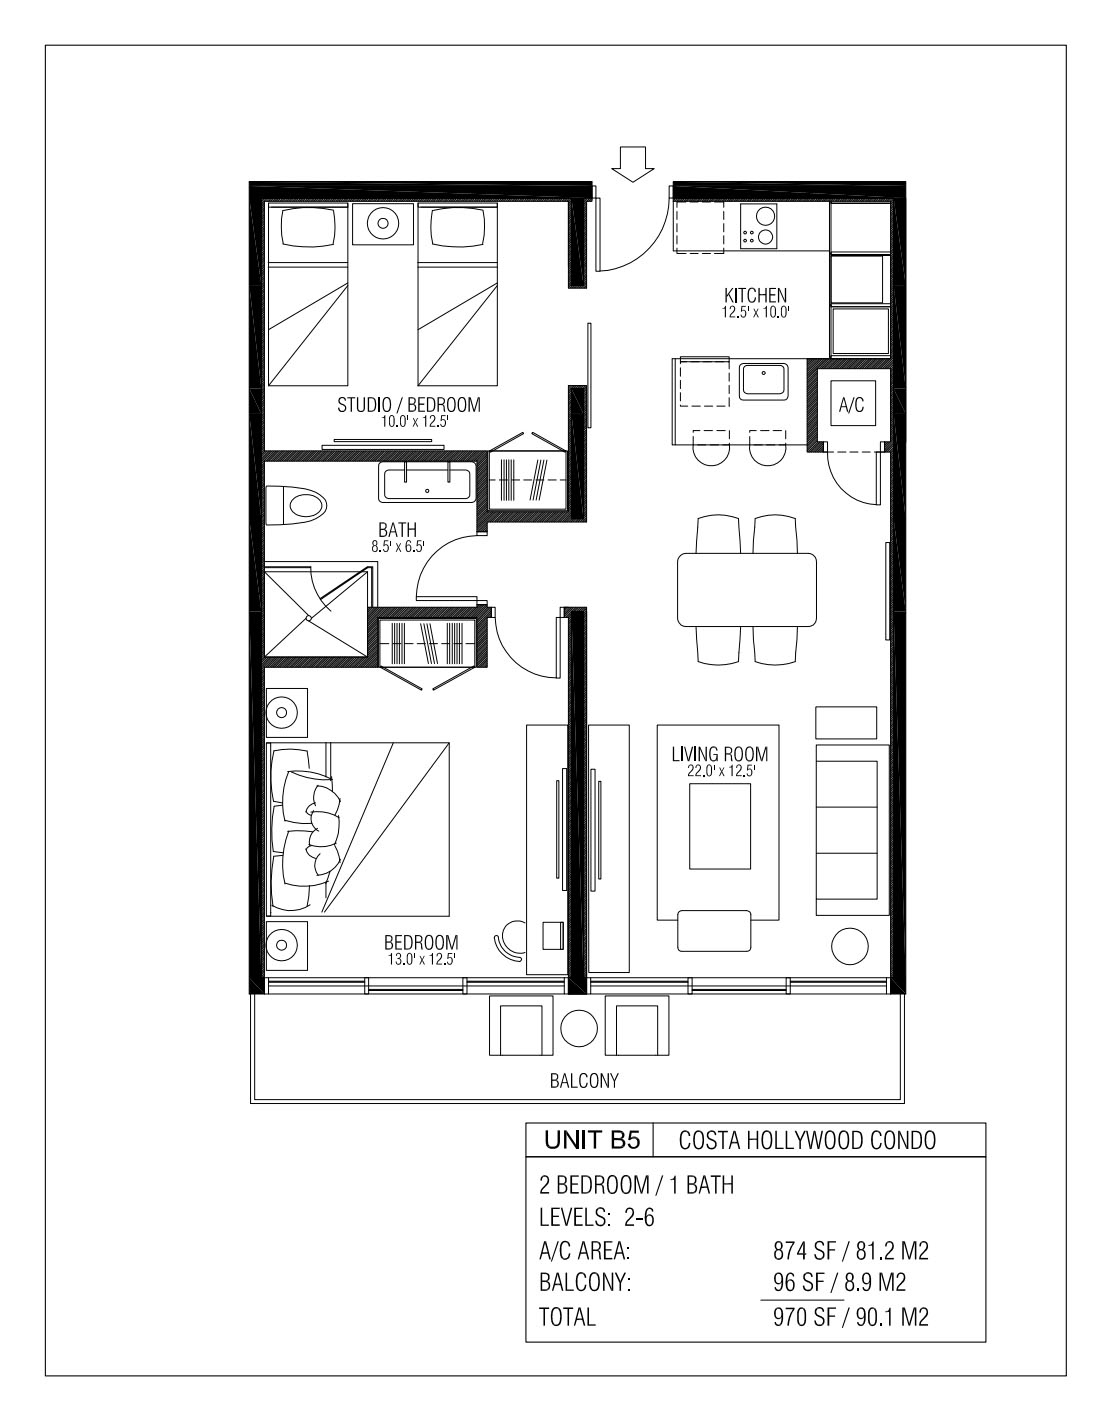 Melia Costa Hollywood - Floorplan 9